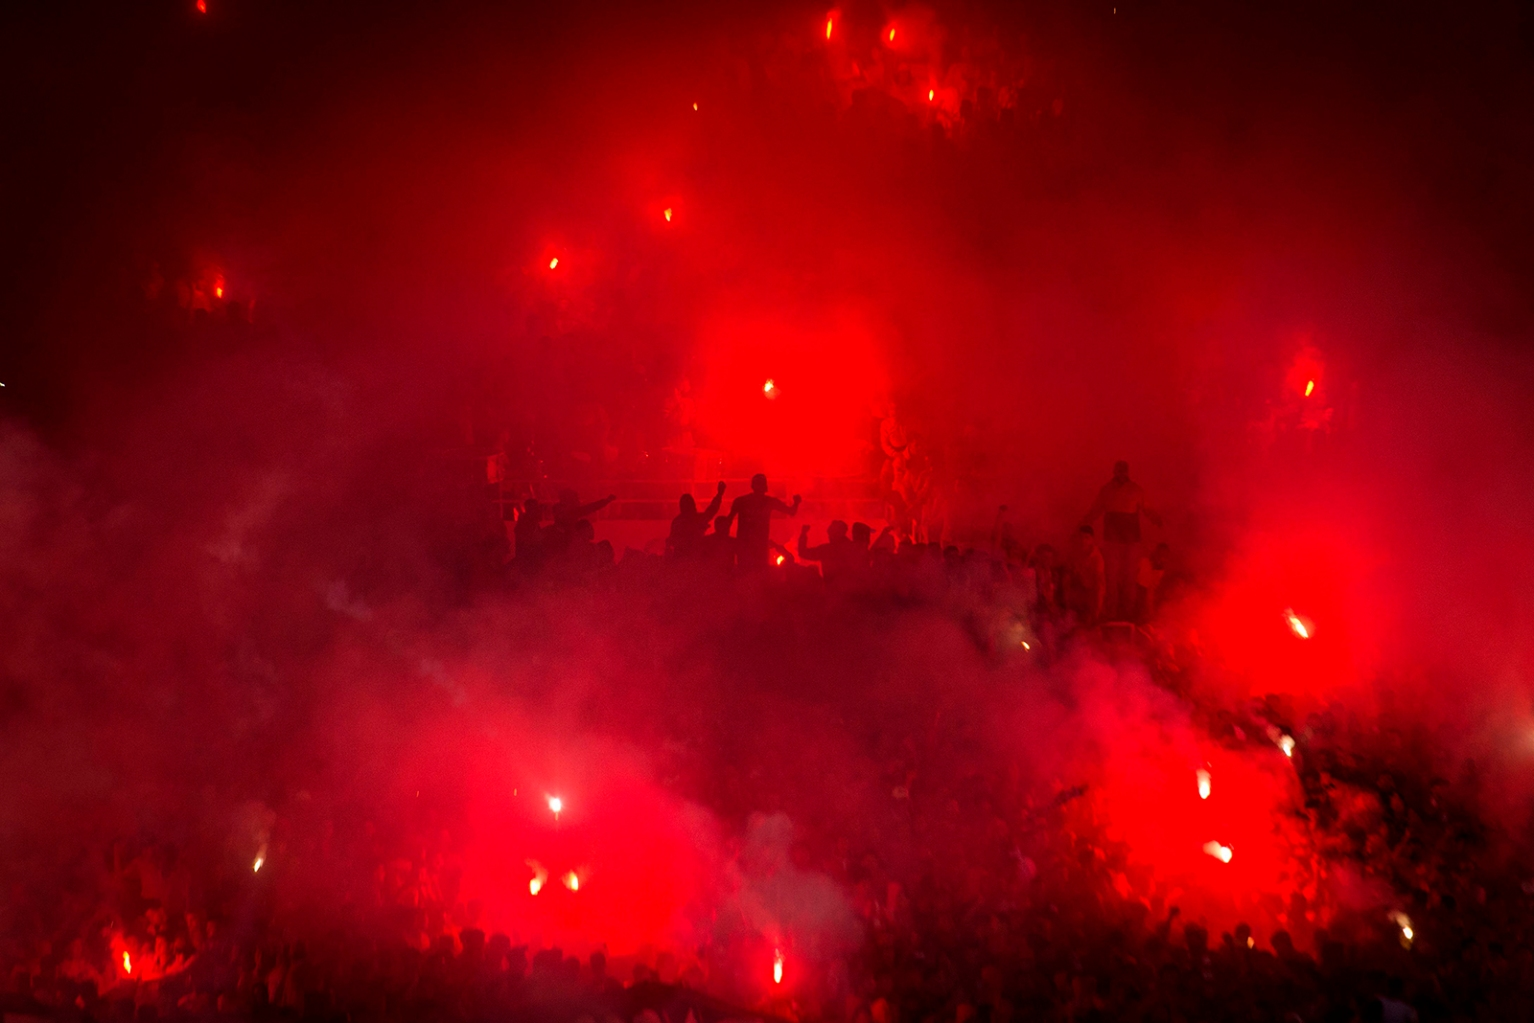 Wydad's supporters light flares during the Confederation of African Football Champions League soccer match between Morocco's Wydad Athletic Club and Tunisia's Esperance sportive de Tunis in Rabat on May 24. FADEL SENNA/AFP/Getty Images